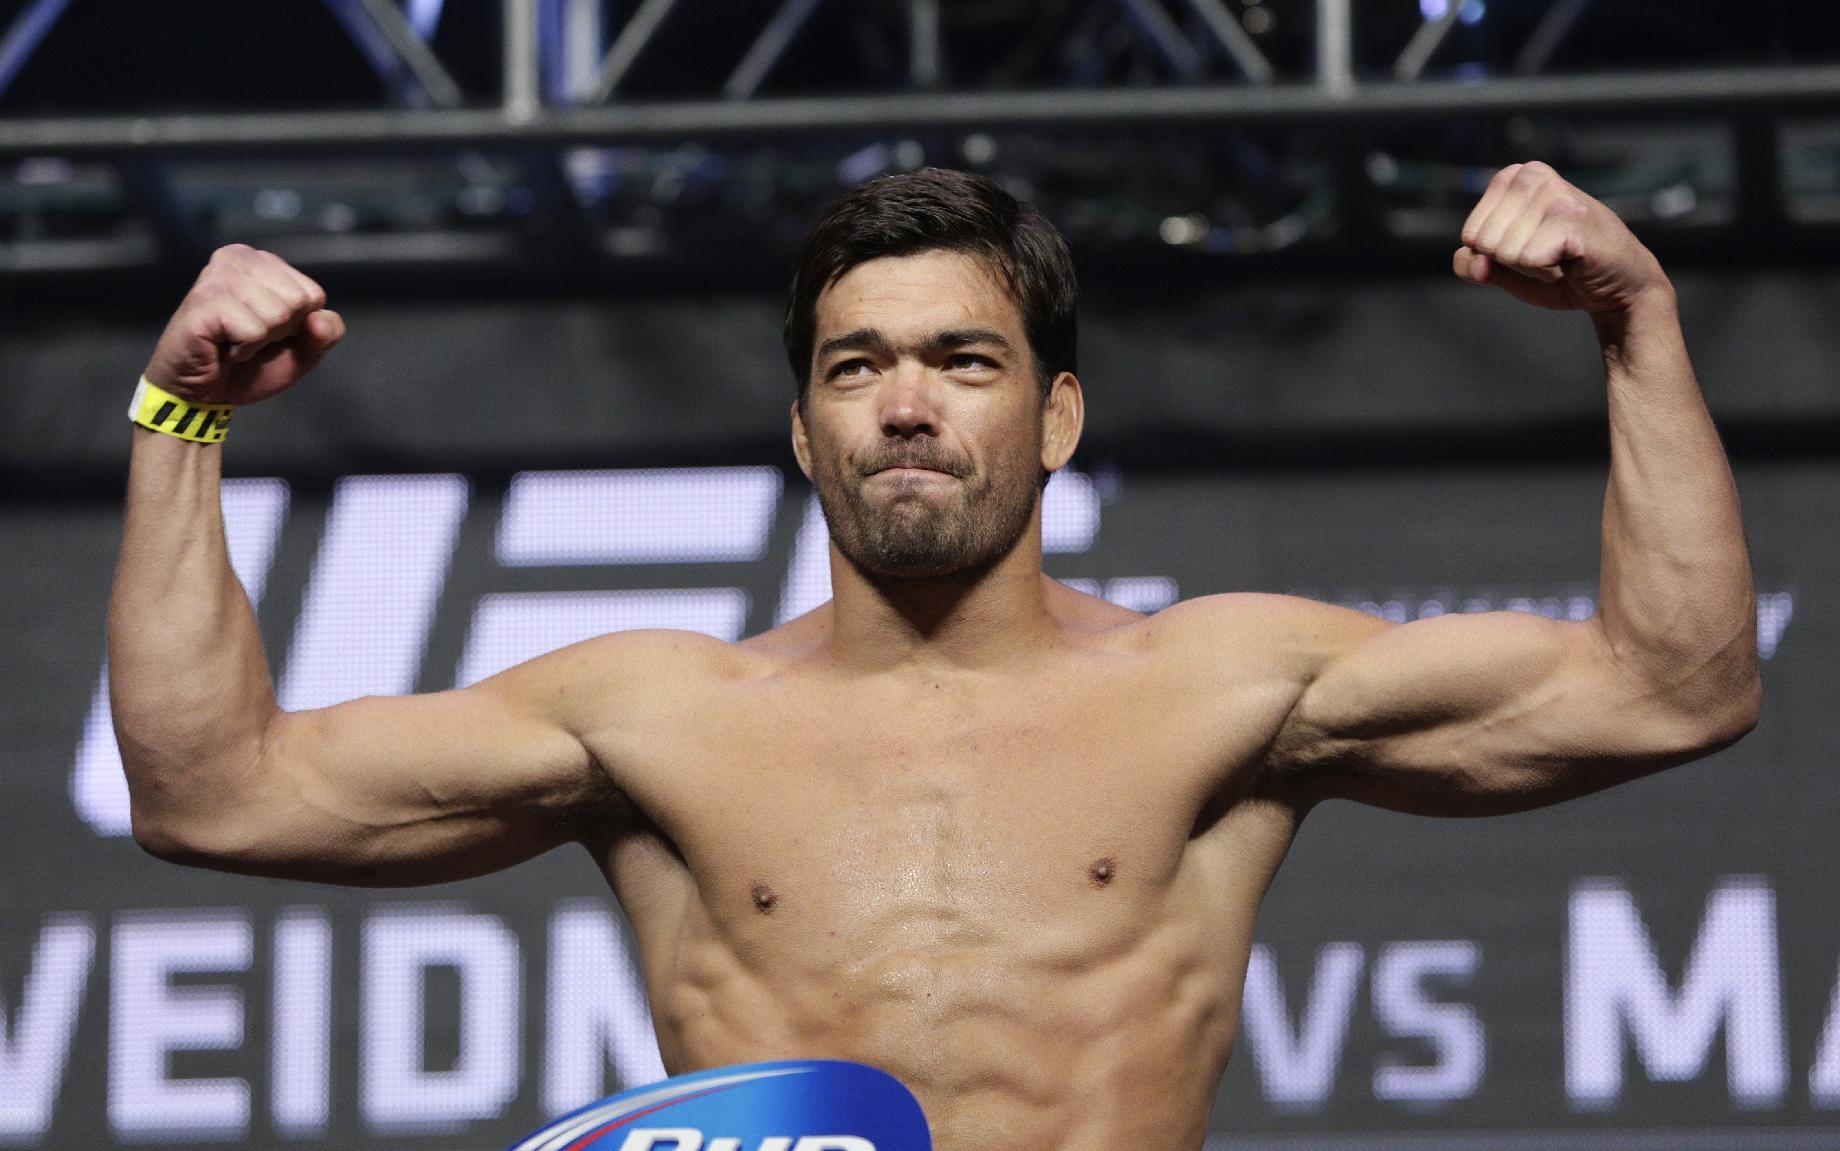 With title window closing, it's now or never for Lyoto Machida